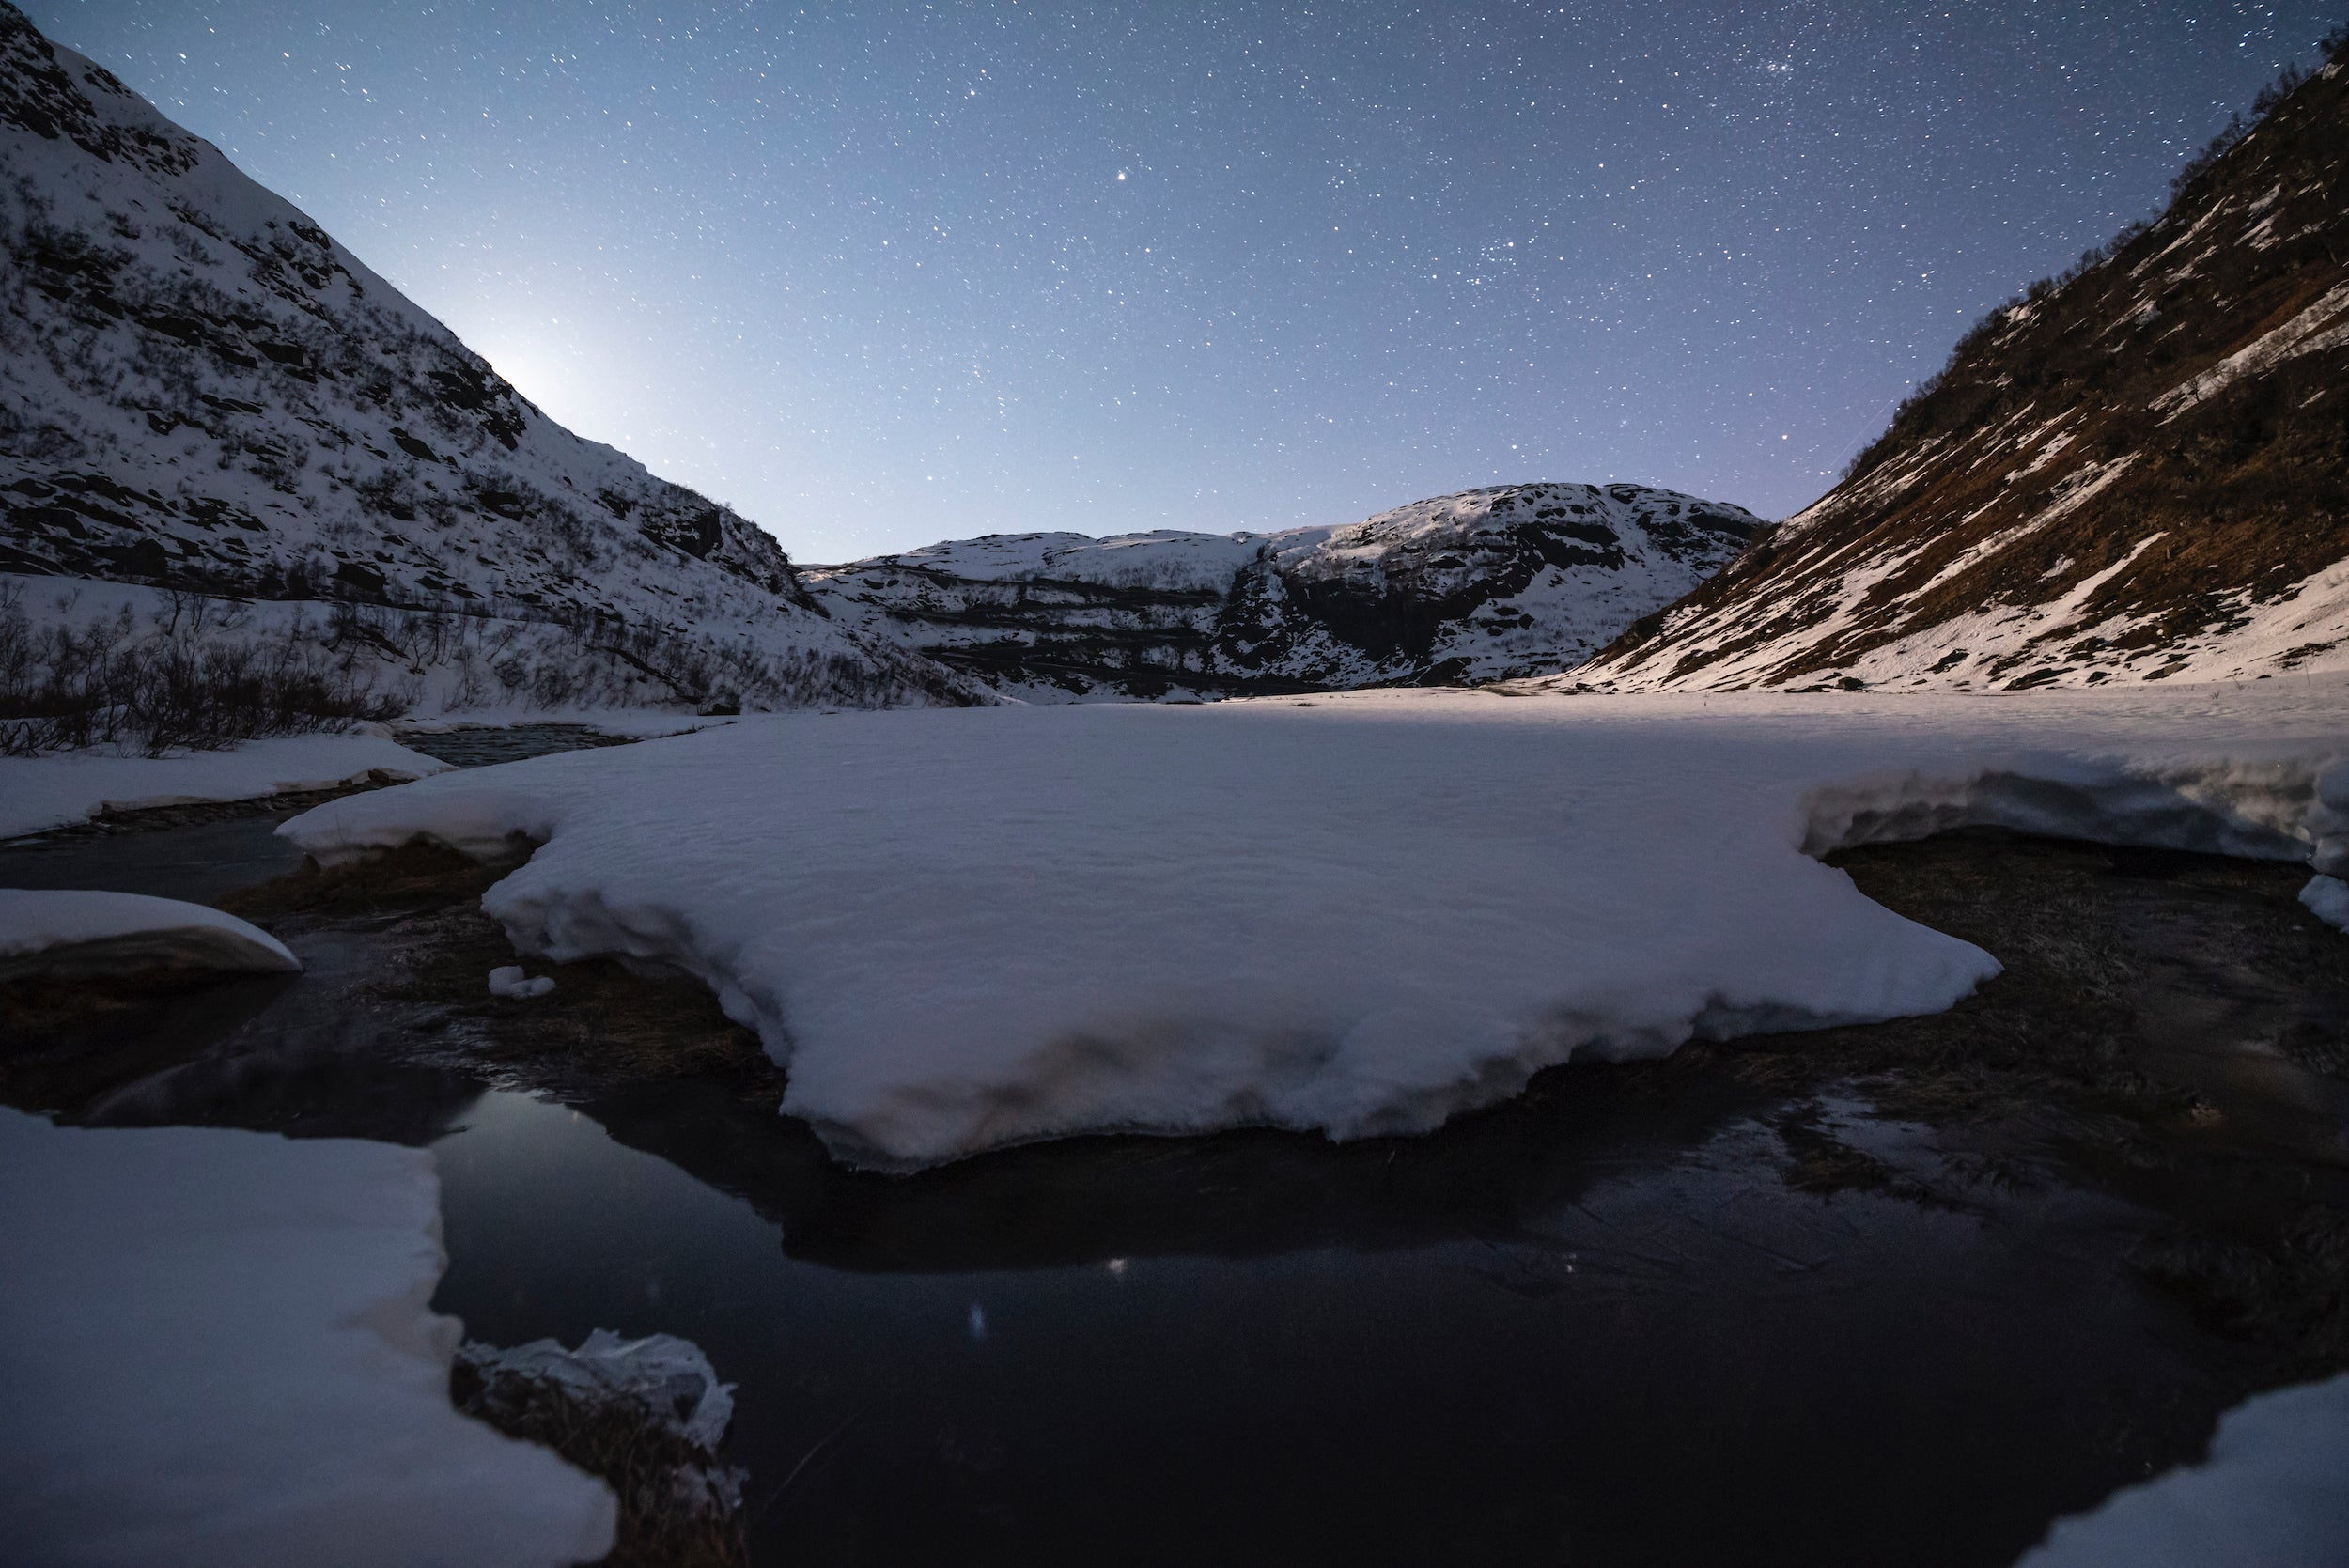 Higher ISO for a starry night in norway